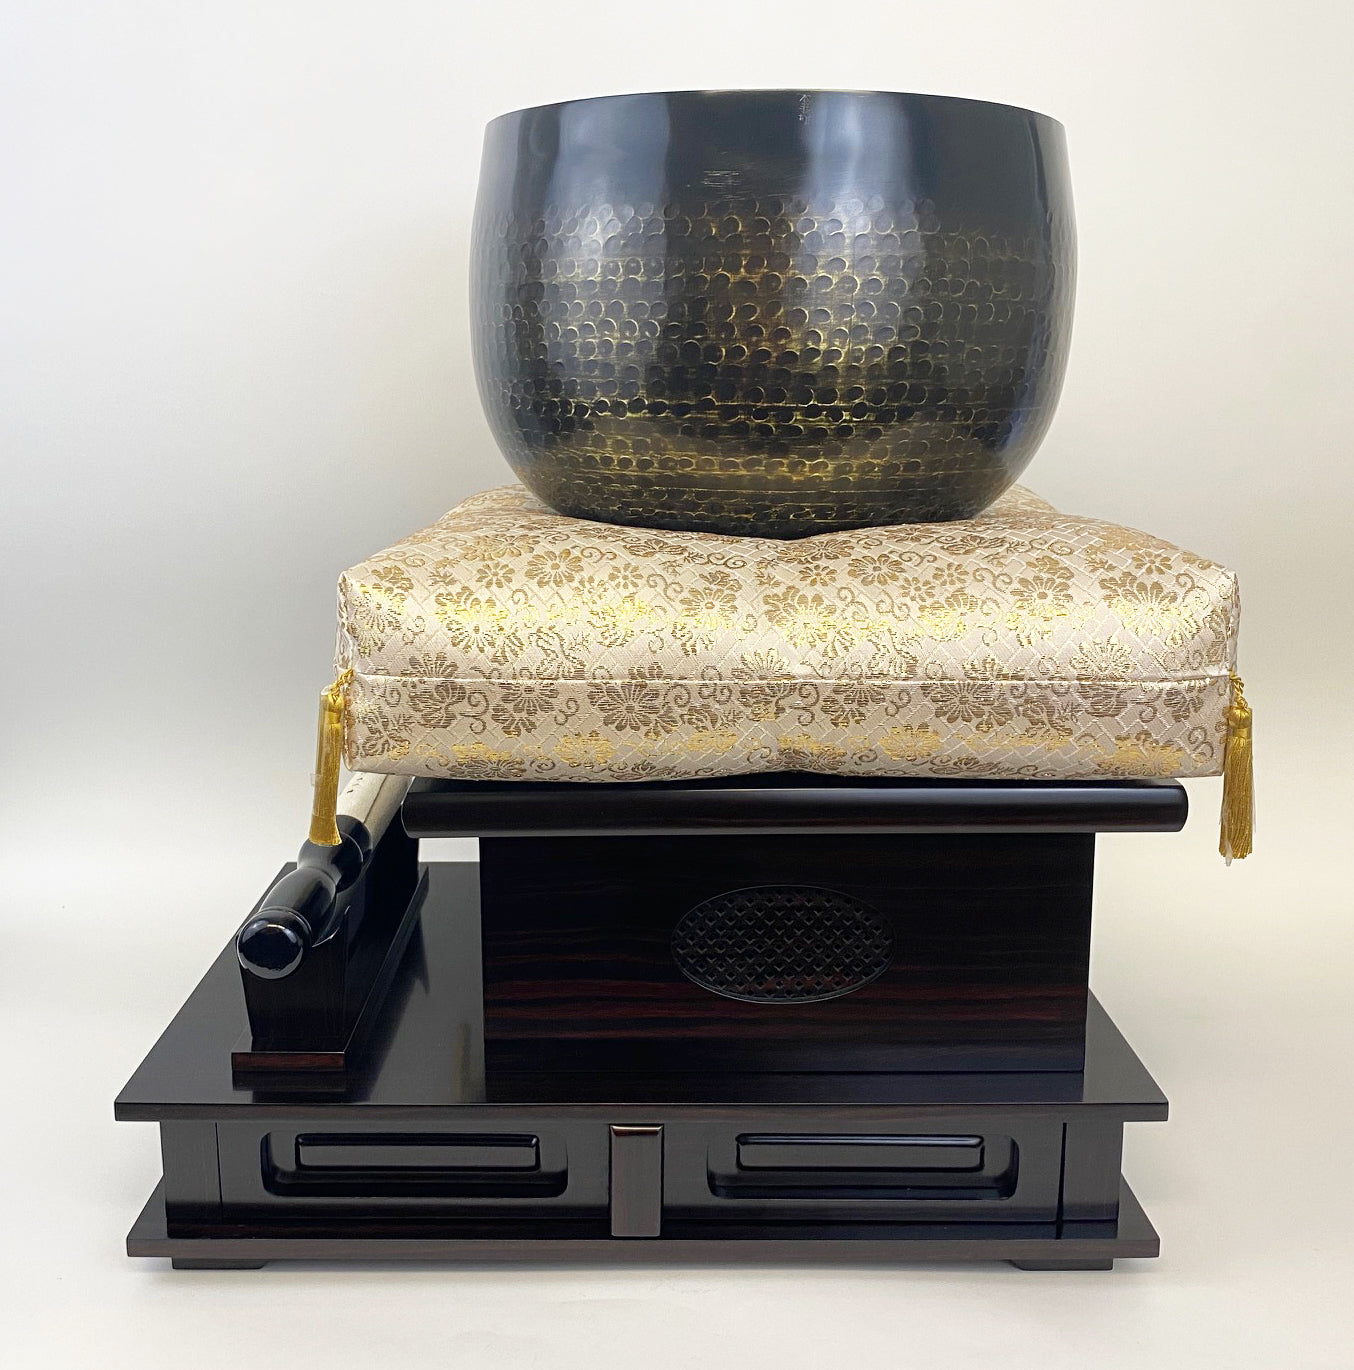 "No. 9 Hand Pounded Bell (10.5"" Diameter) with Ebony Wooden Base and Gold Cushion with Bell Stick Set"